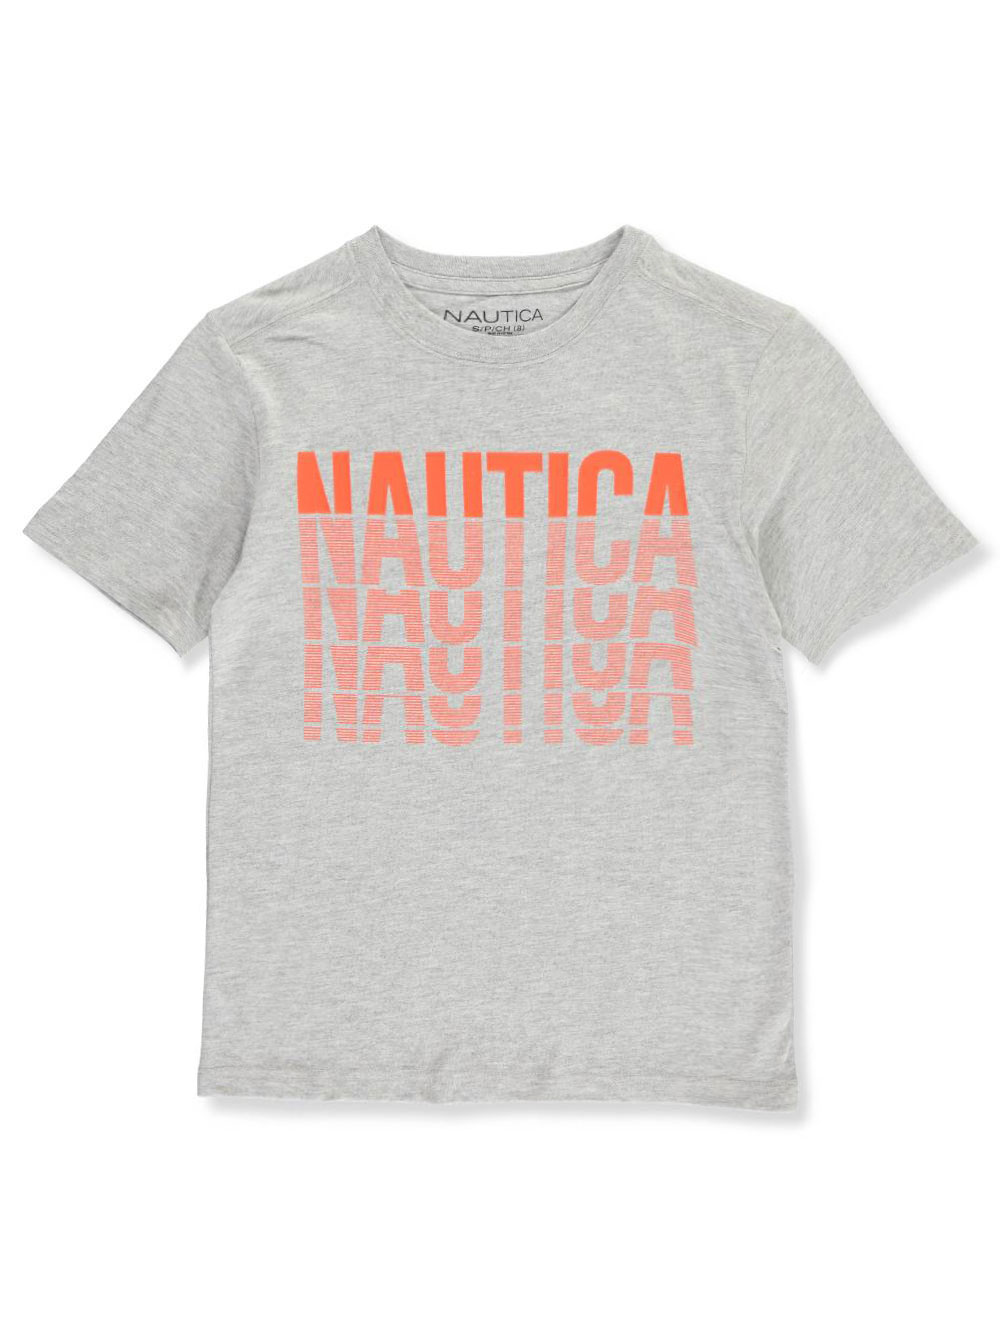 Boys' Lined Logo T-Shirt by Nautica in cobalt, gray heather, red and white